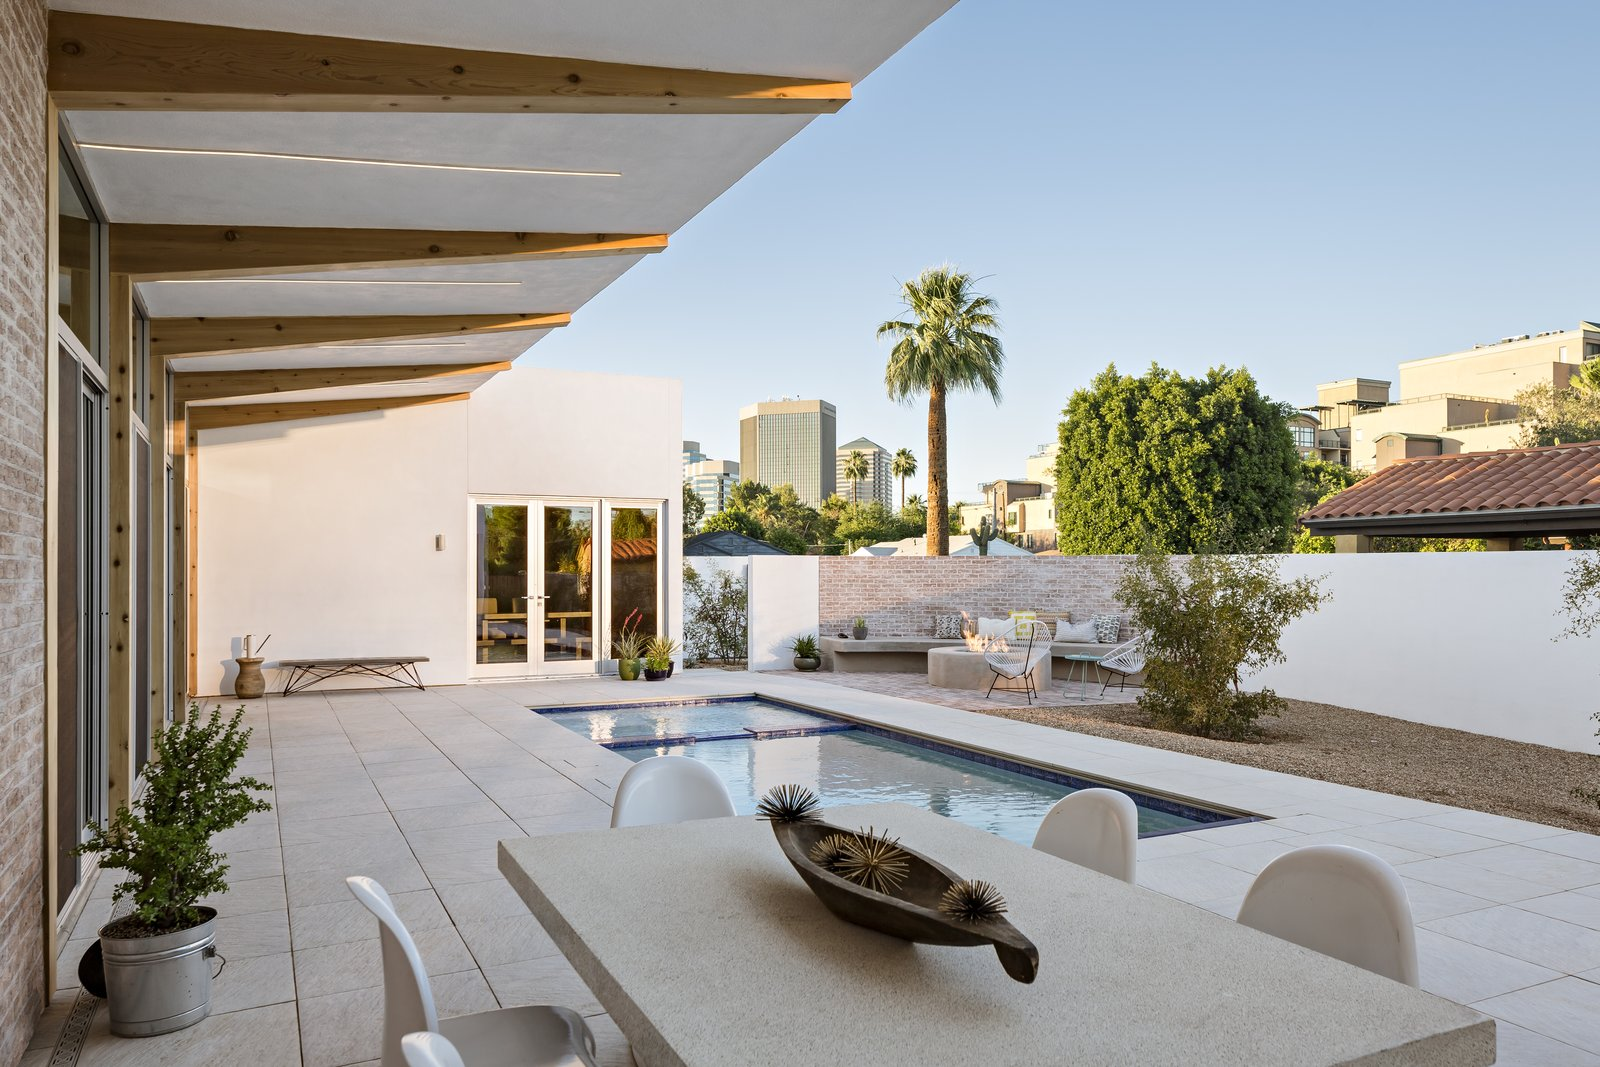 A 10 foot deep cantilevered roof provides consistent shade pool side in the courtyard